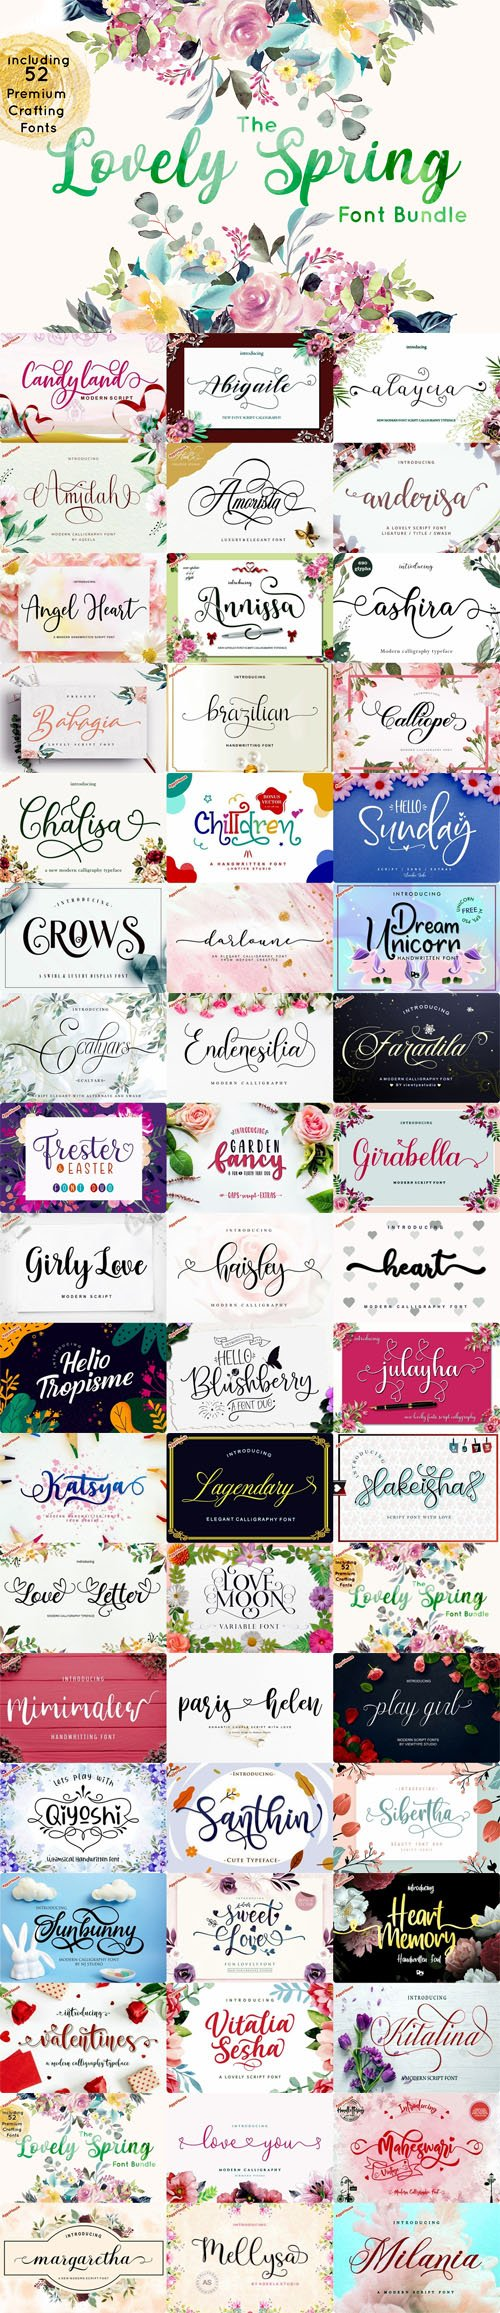 The Lovely Spring Font Bundle - 52 Premium Crafting Fonts